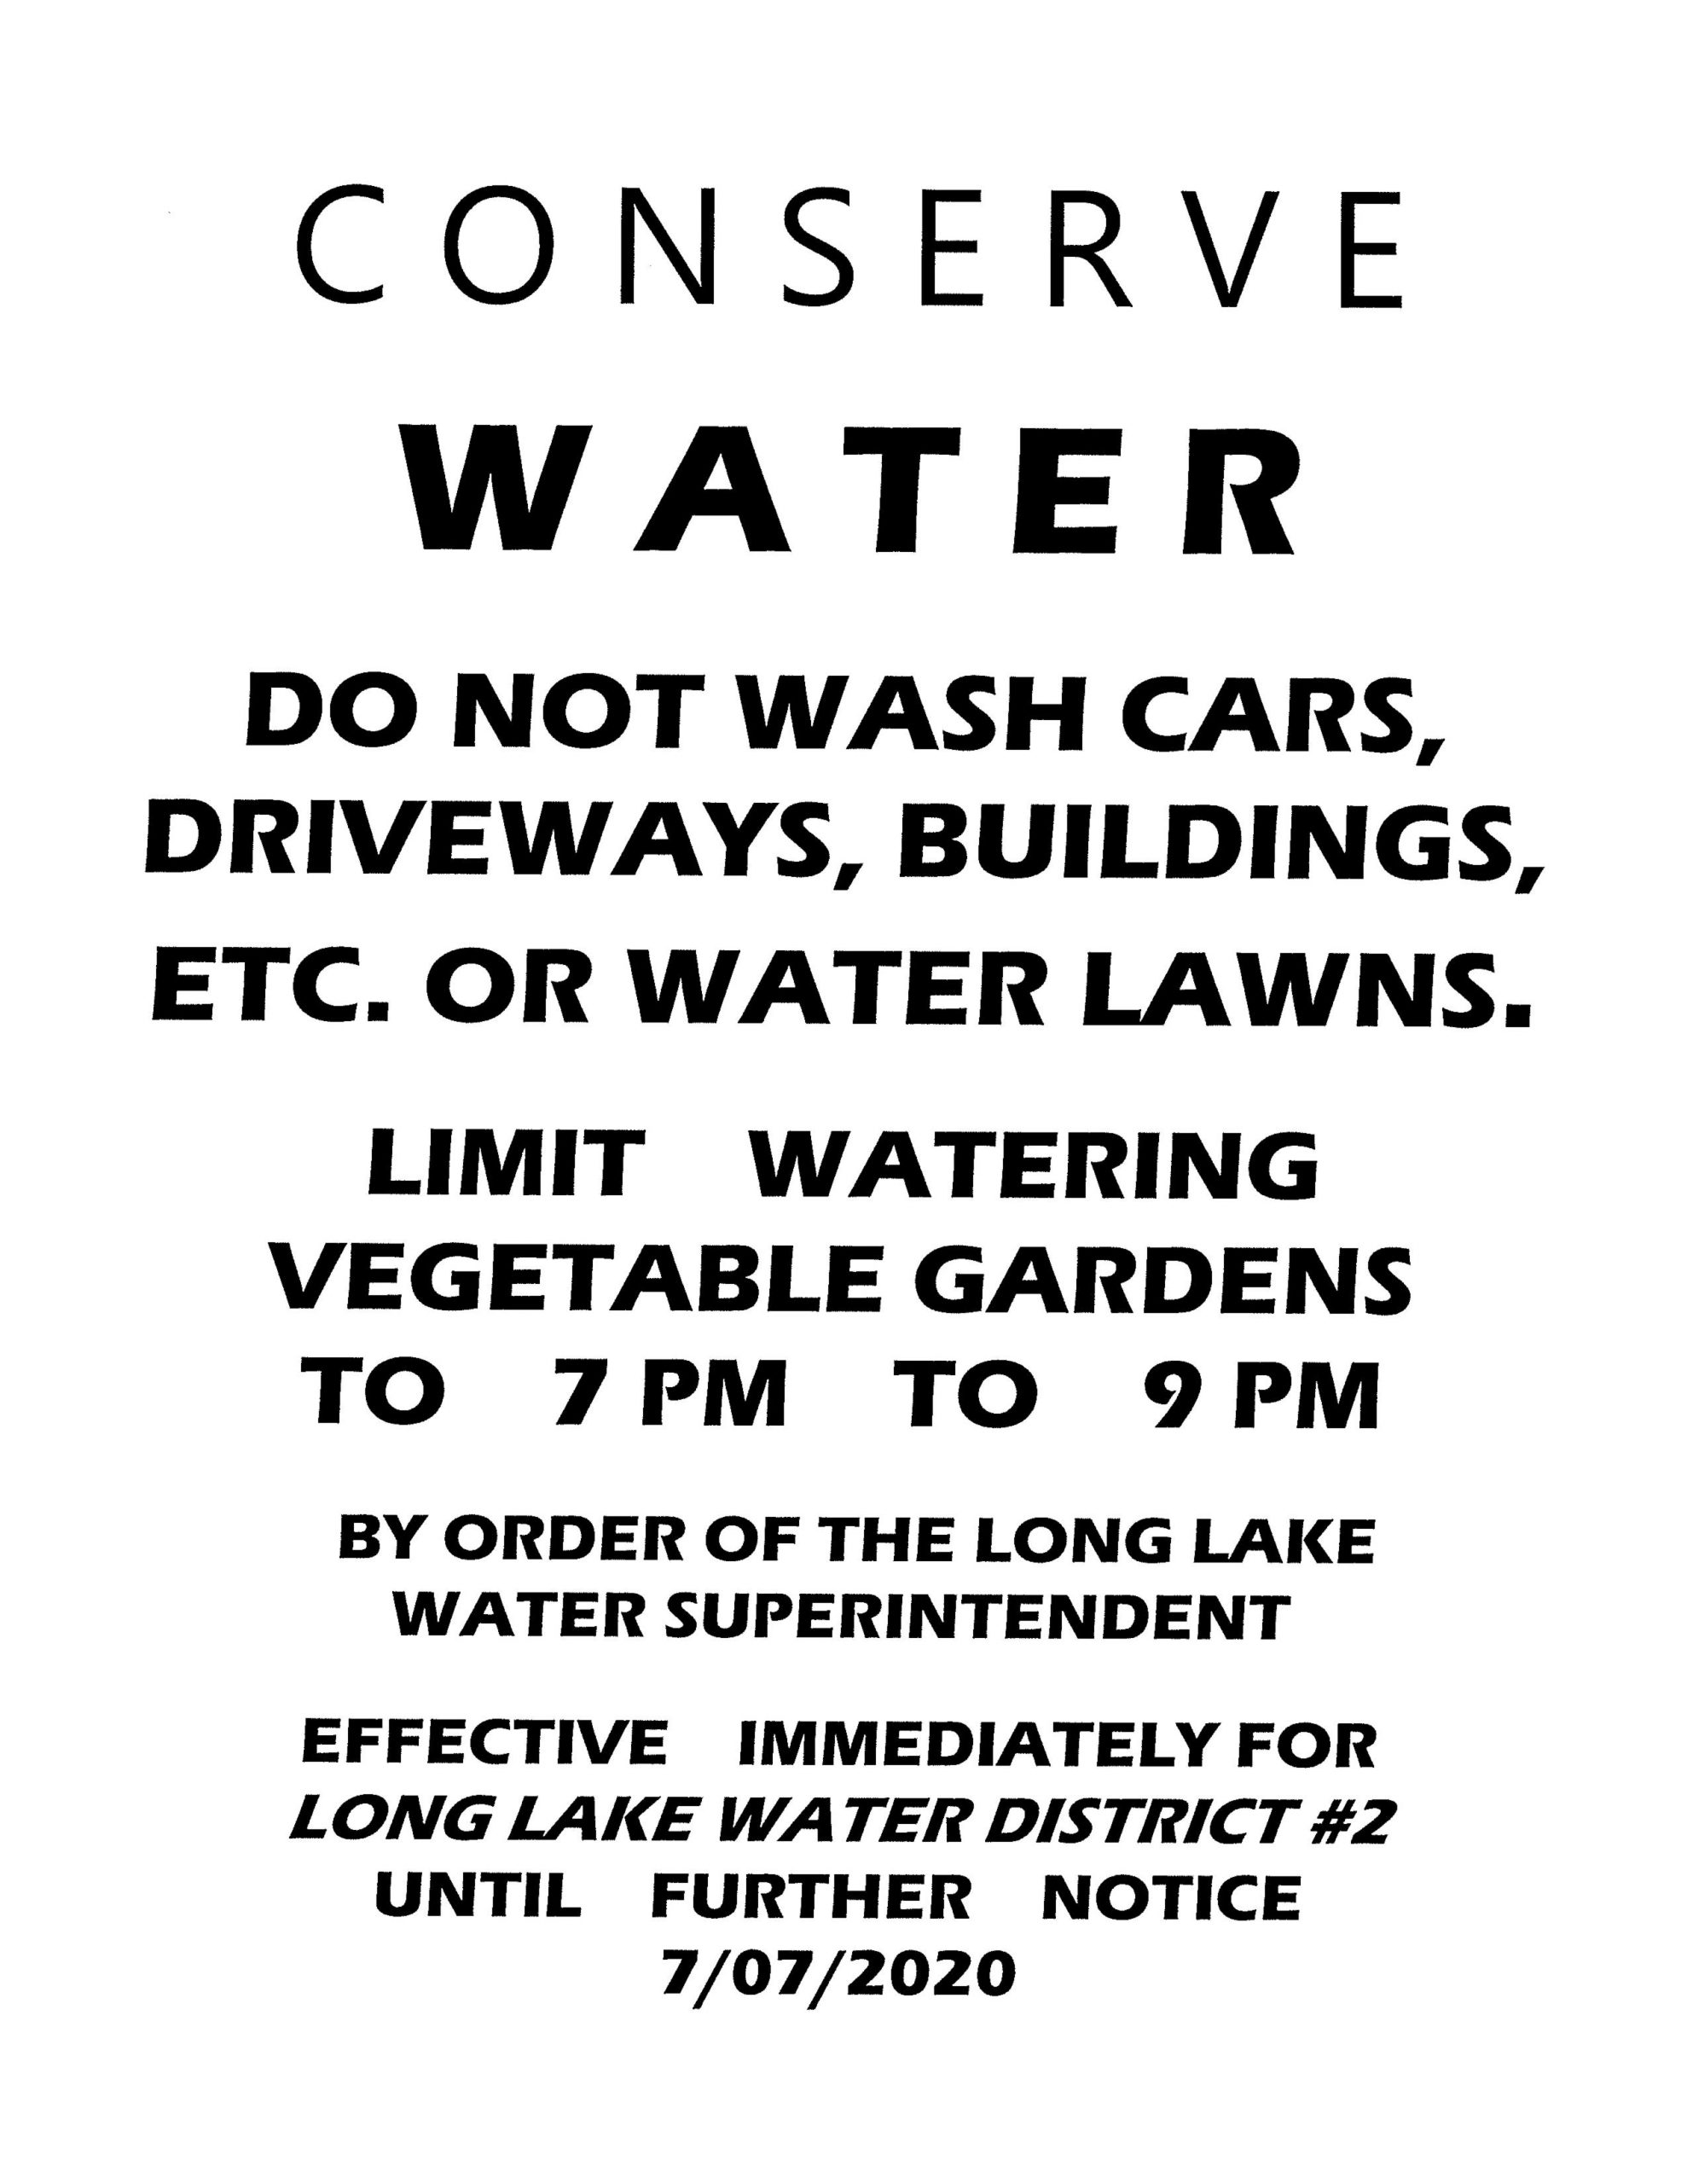 Conserve Water order until Futher Notice